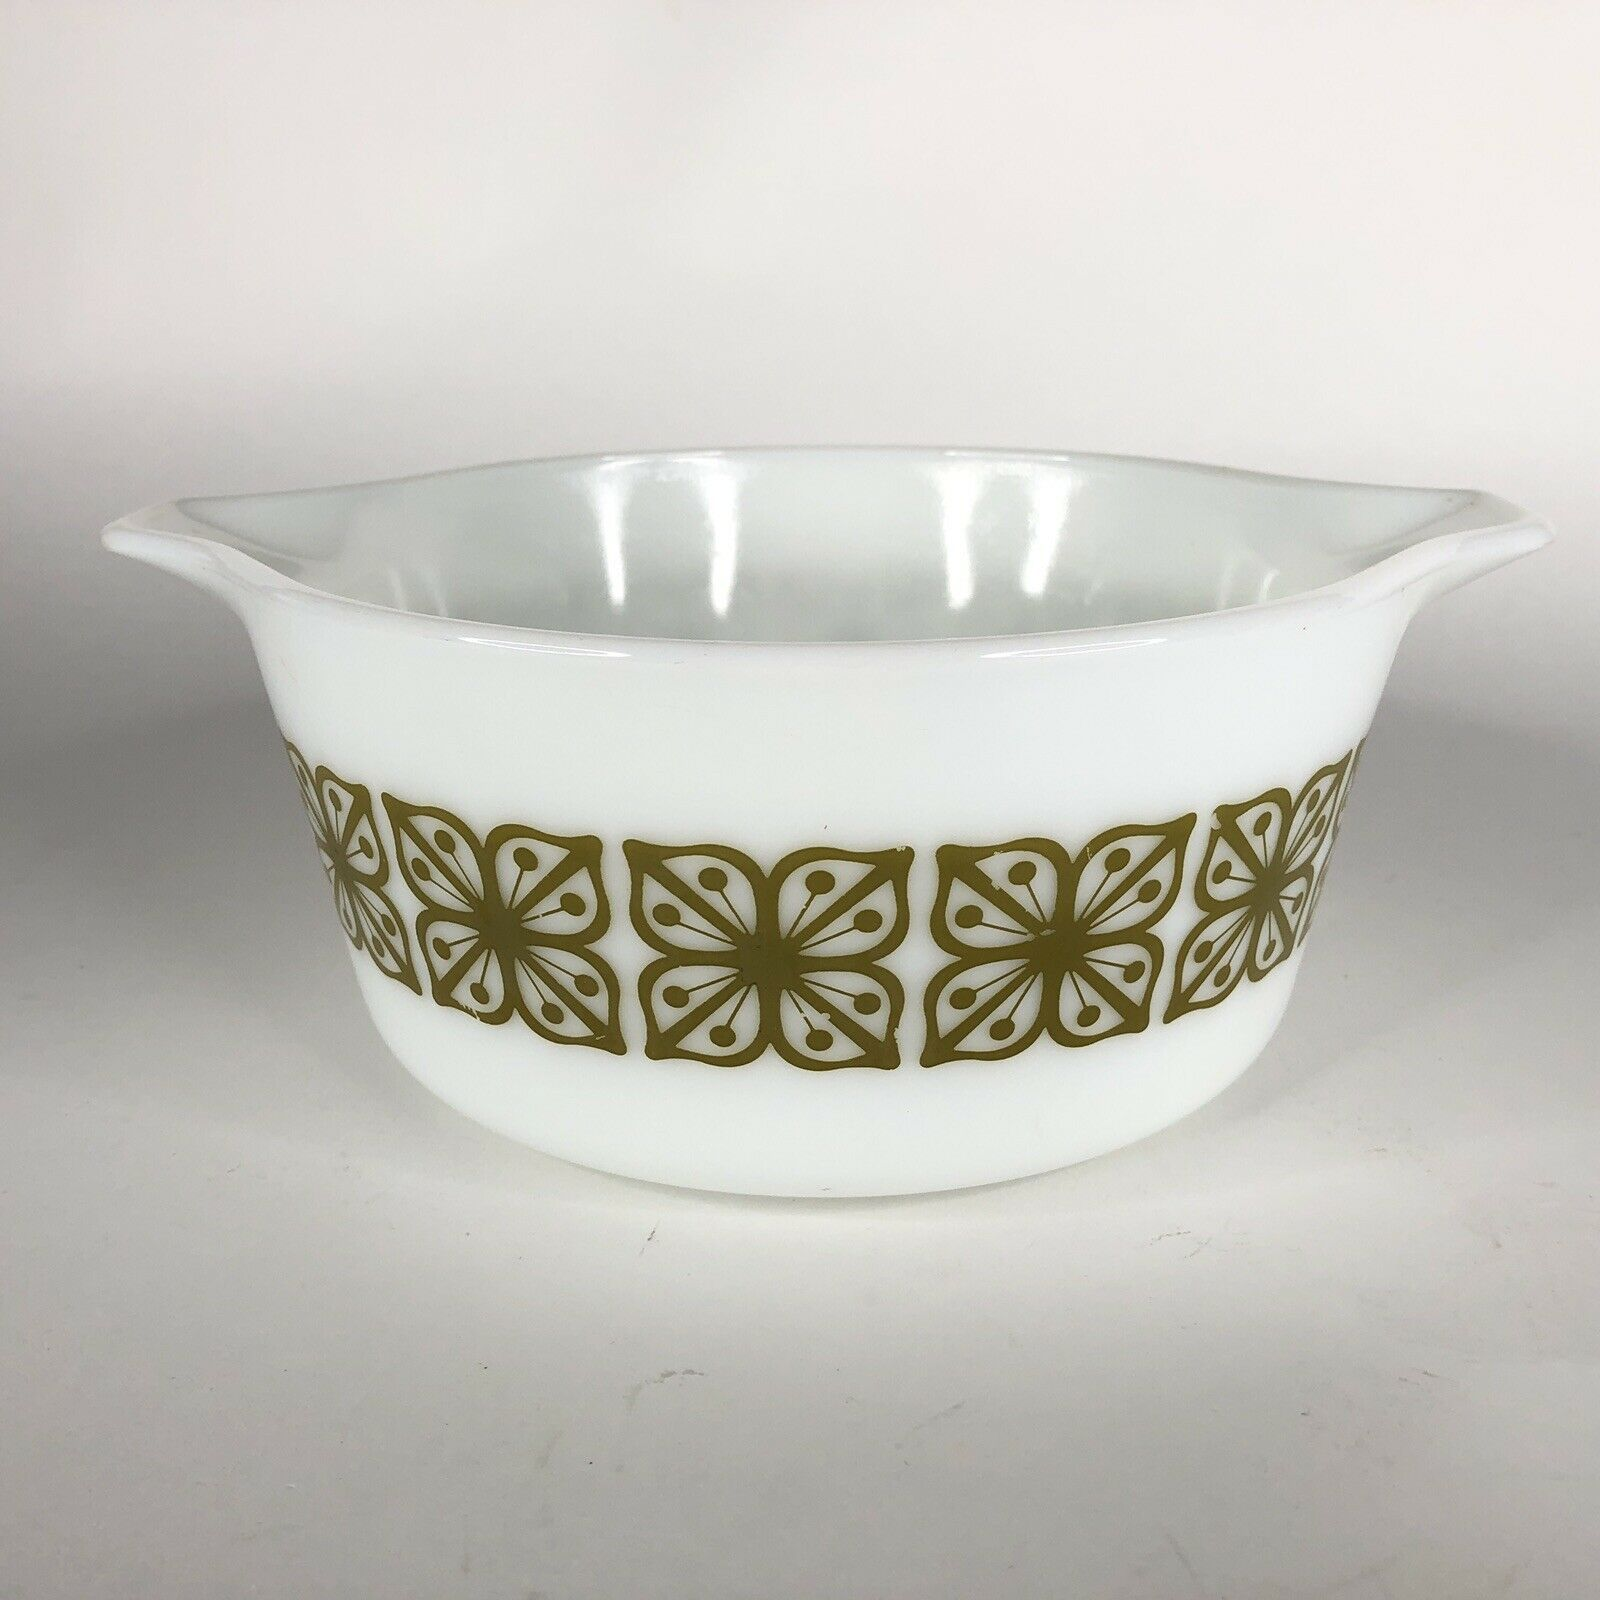 Pyrex Verde Square Green Flower Casserole Dish 474 B Covered Baking 1.5 Quart QT image 2